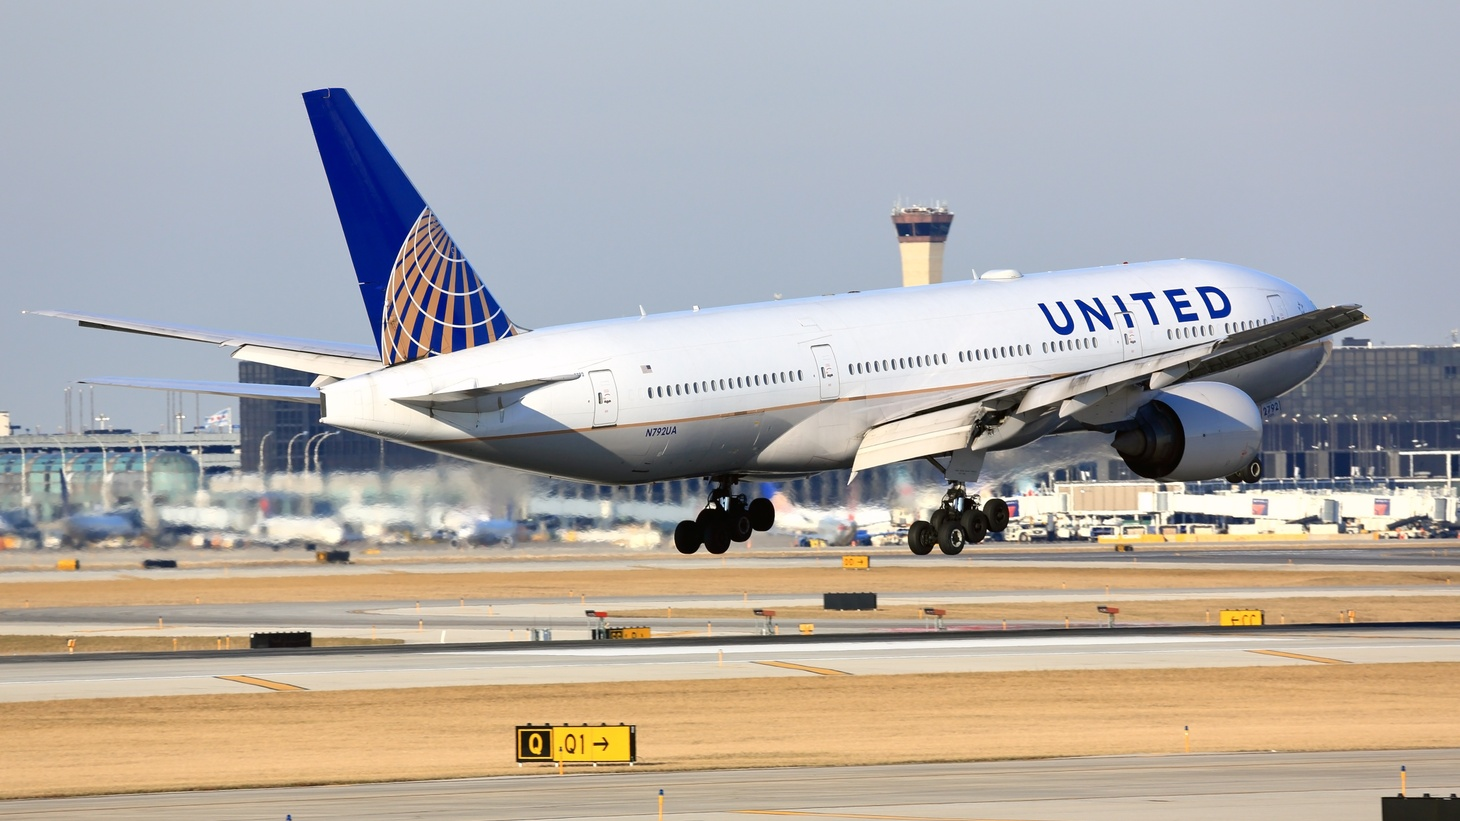 United Airlines this week placed its largest order to date for new planes.